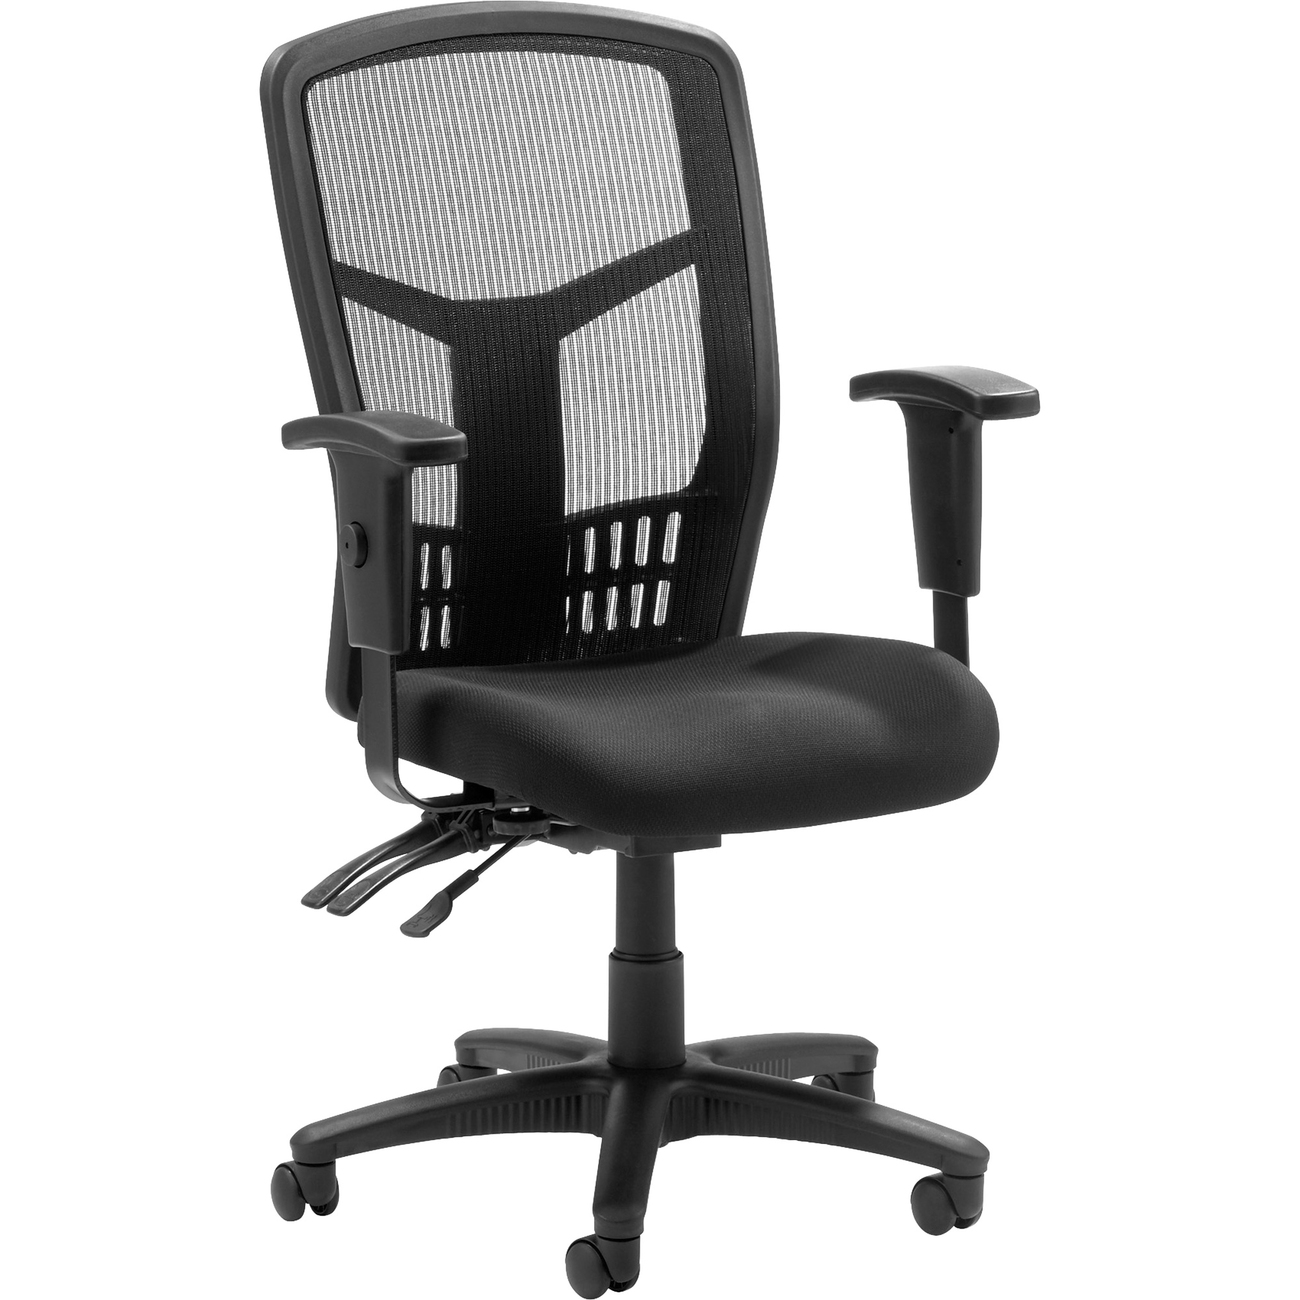 Executive High Back Chair With A Mesh Back And Mesh Fabric Seat;  Ergonomically Designed ...